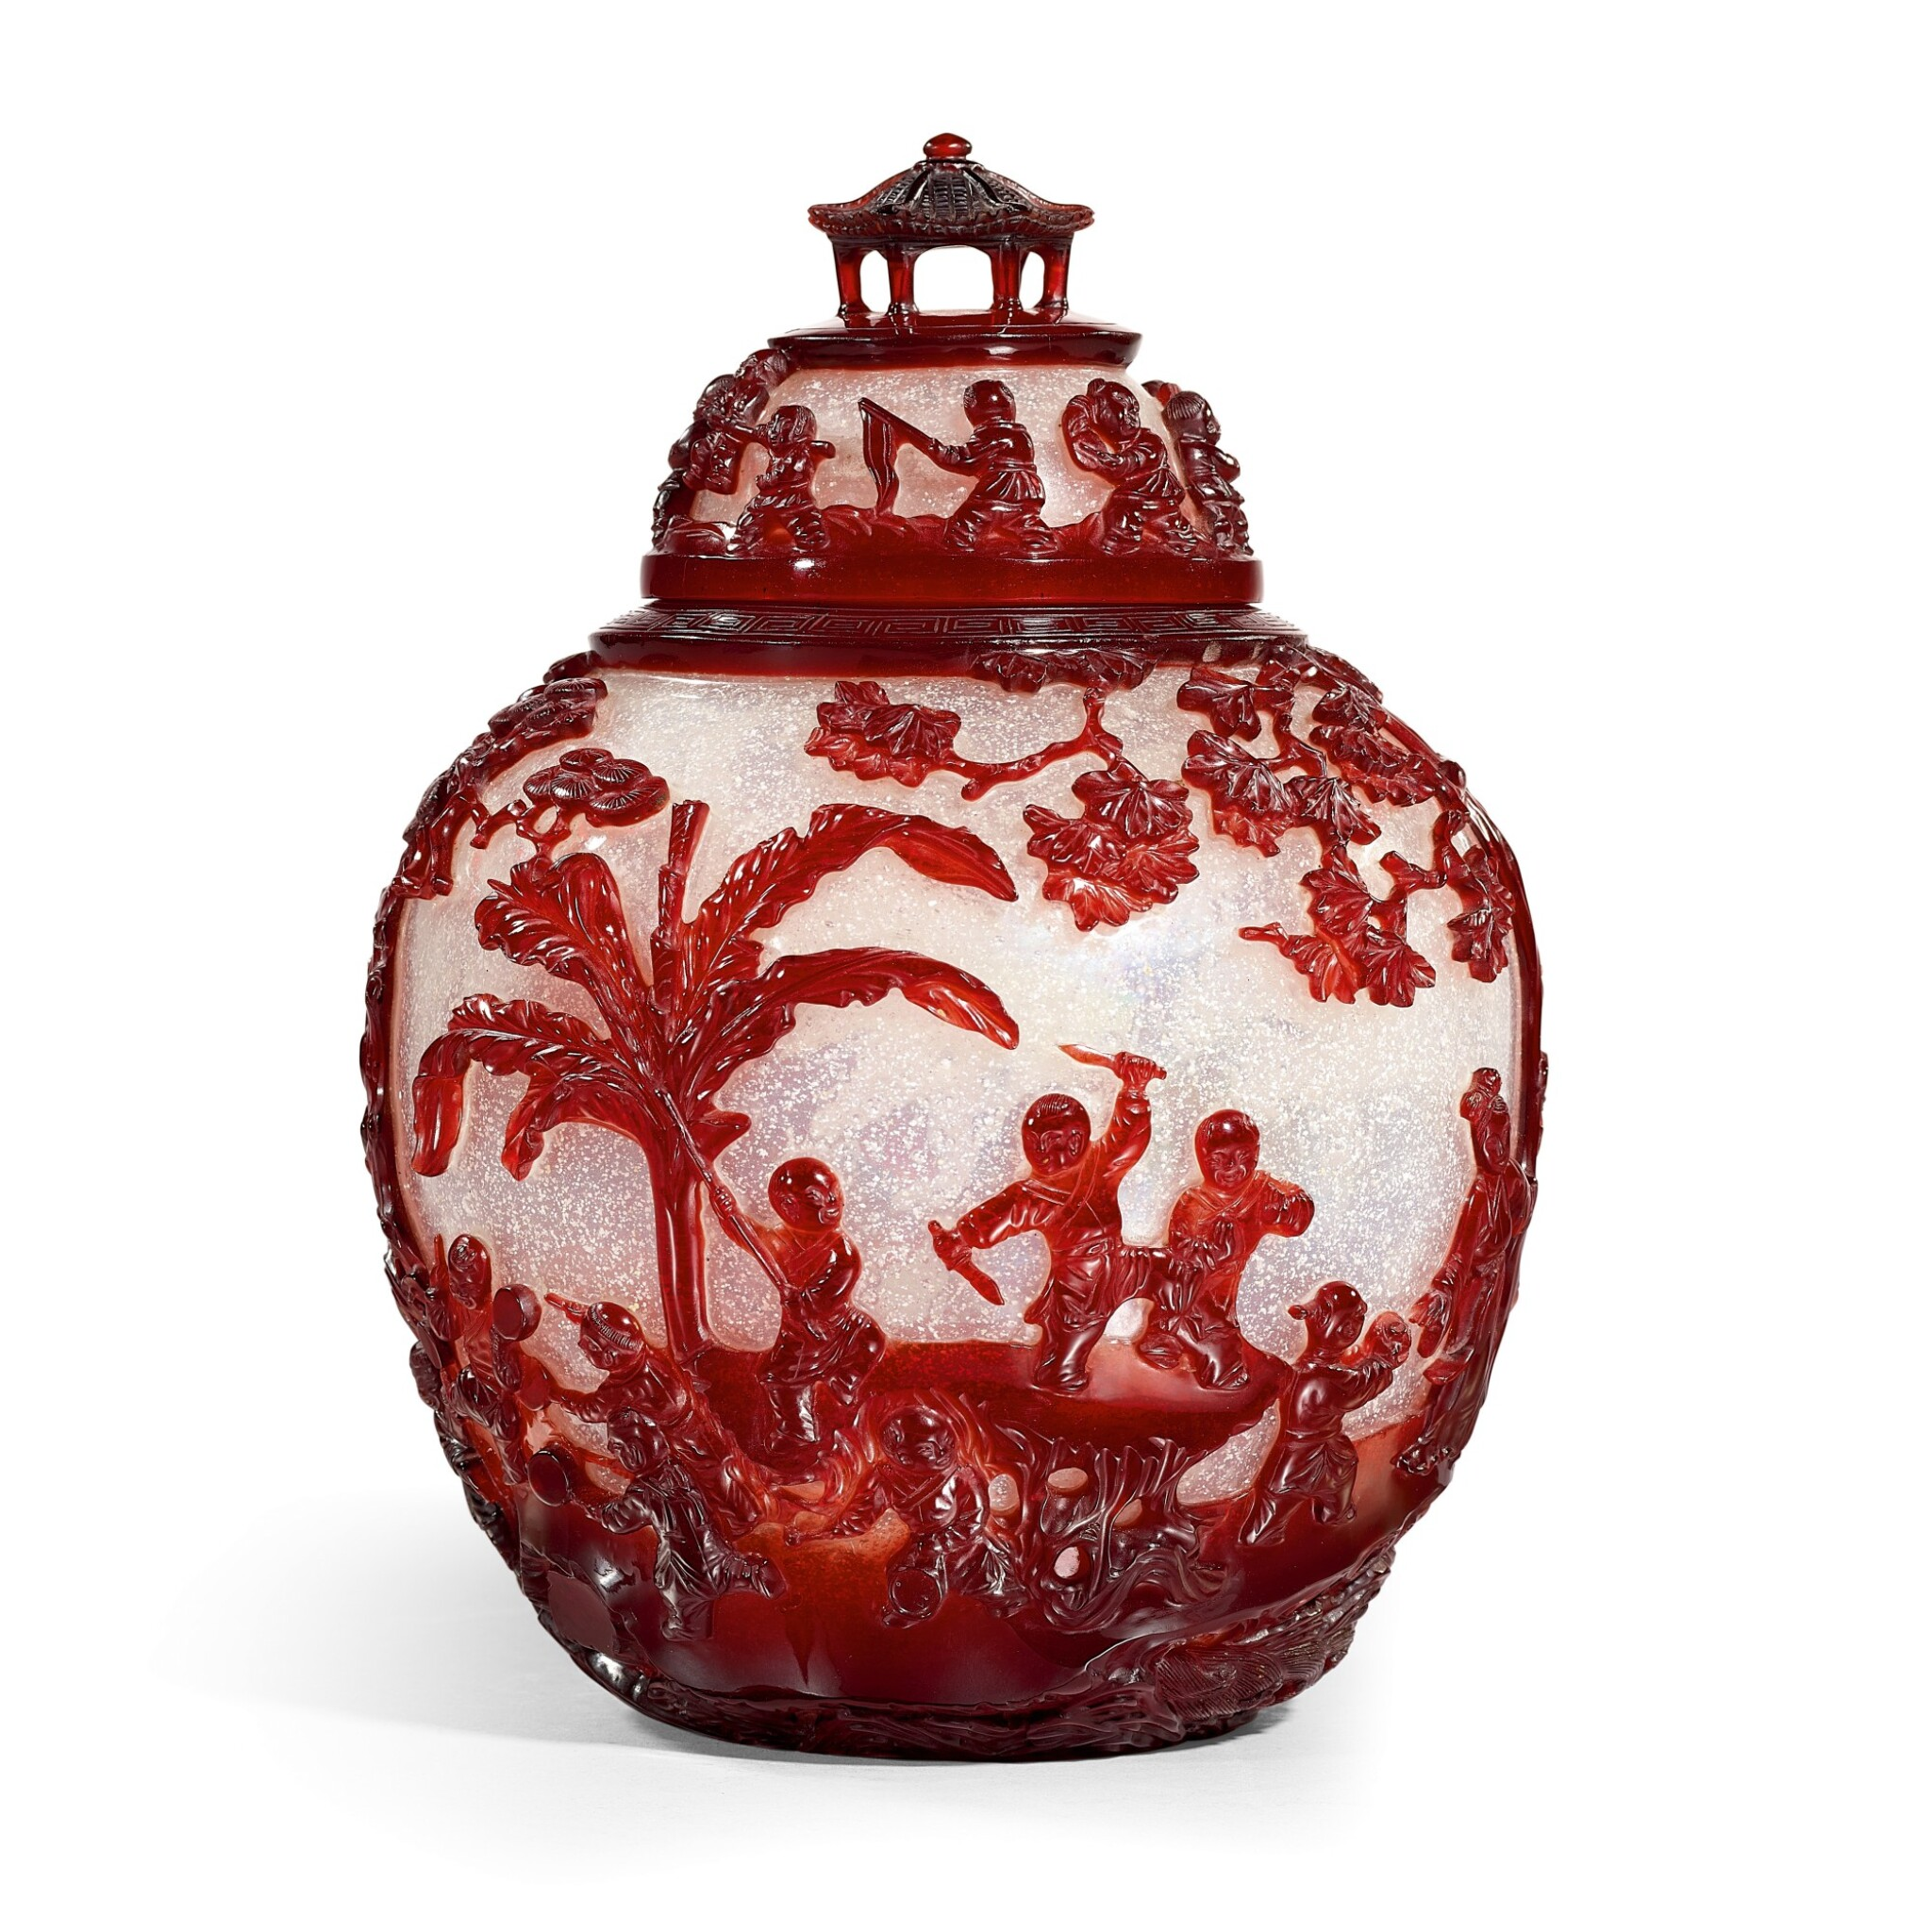 View full screen - View 1 of Lot 3606. An extremely rare and superb ruby-red overlay Peking glass jar and cover Seal mark and period of Qianlong   清乾隆 雪霏地套寶石紅料庭園仕女嬰戲圖蓋罐 《乾隆年製》款.